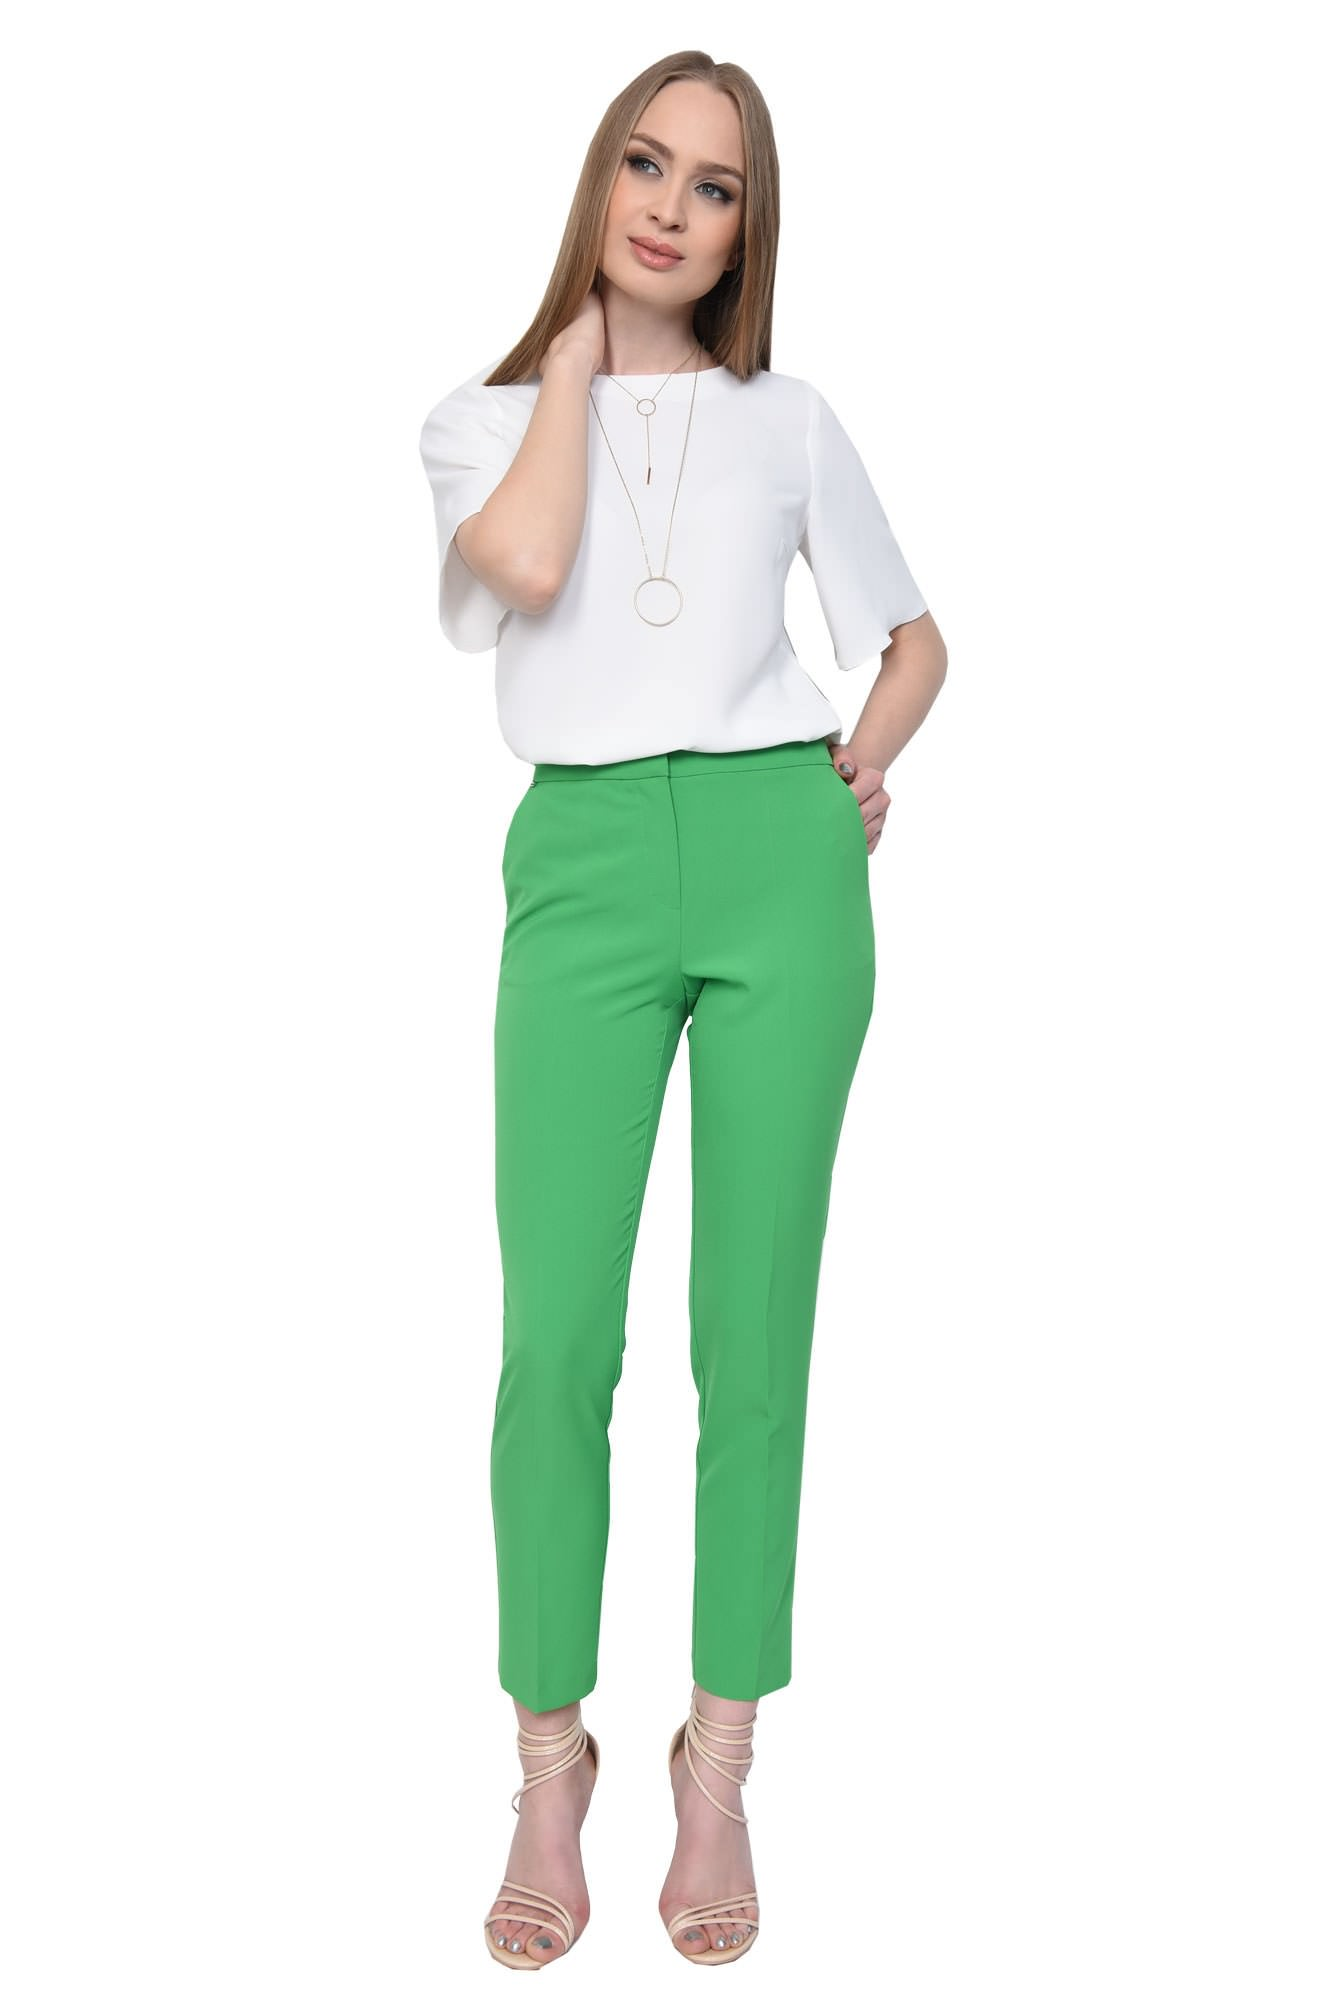 0 - PANTALON OFFICE CONIC PT 142-VERDE